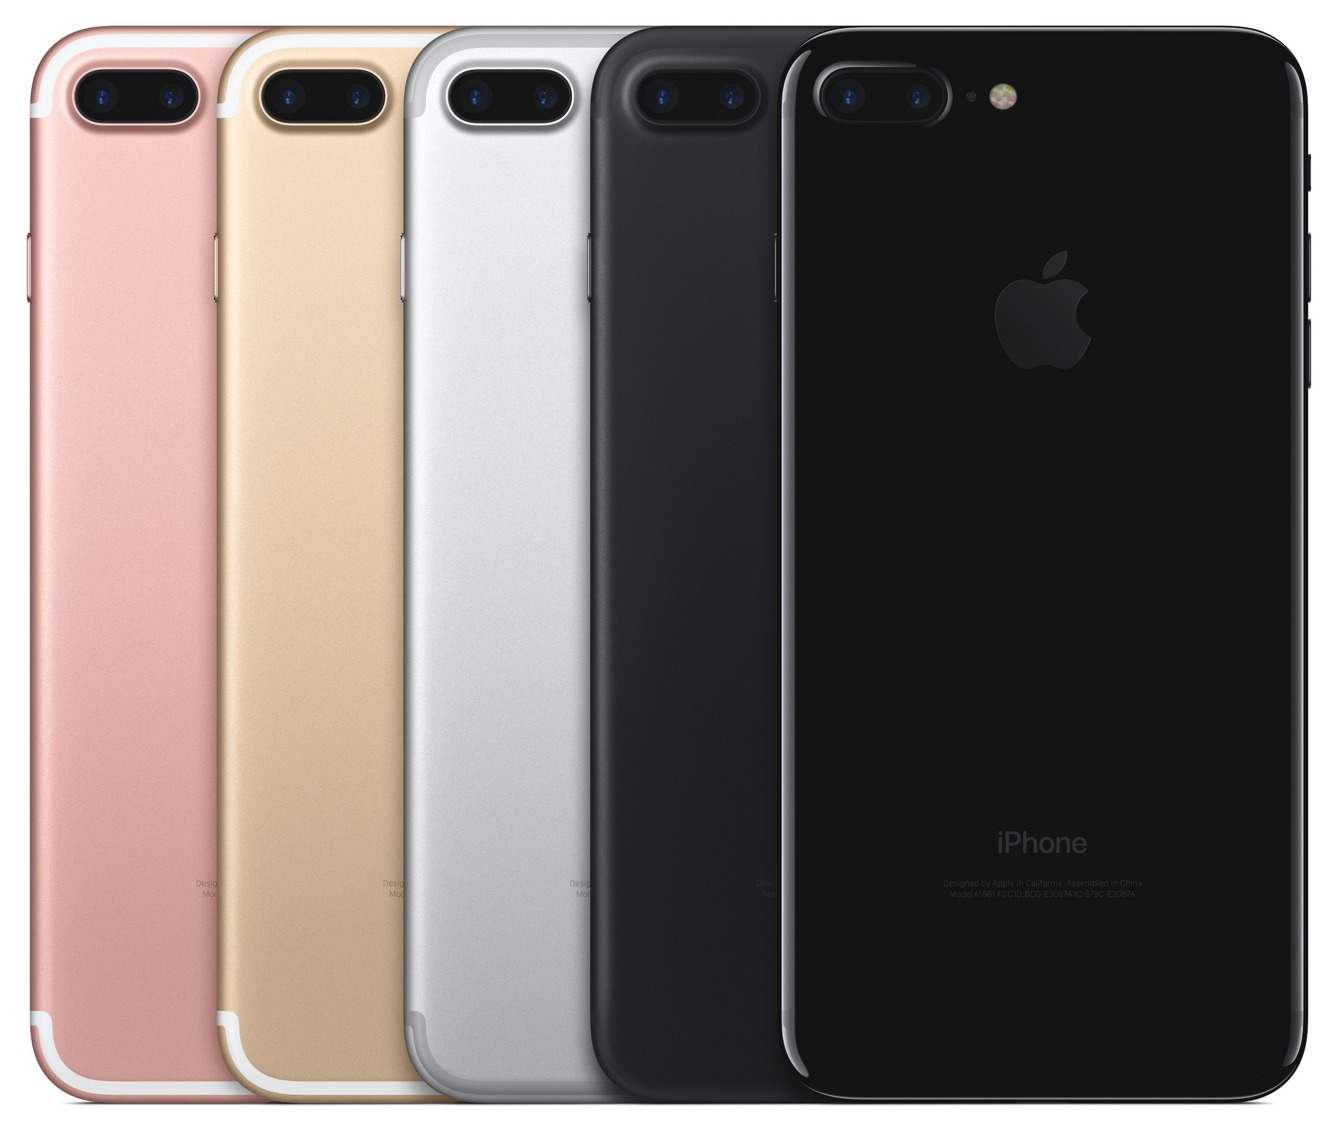 iPhone 7 Launches… Well, Pretty Much As Predicted!